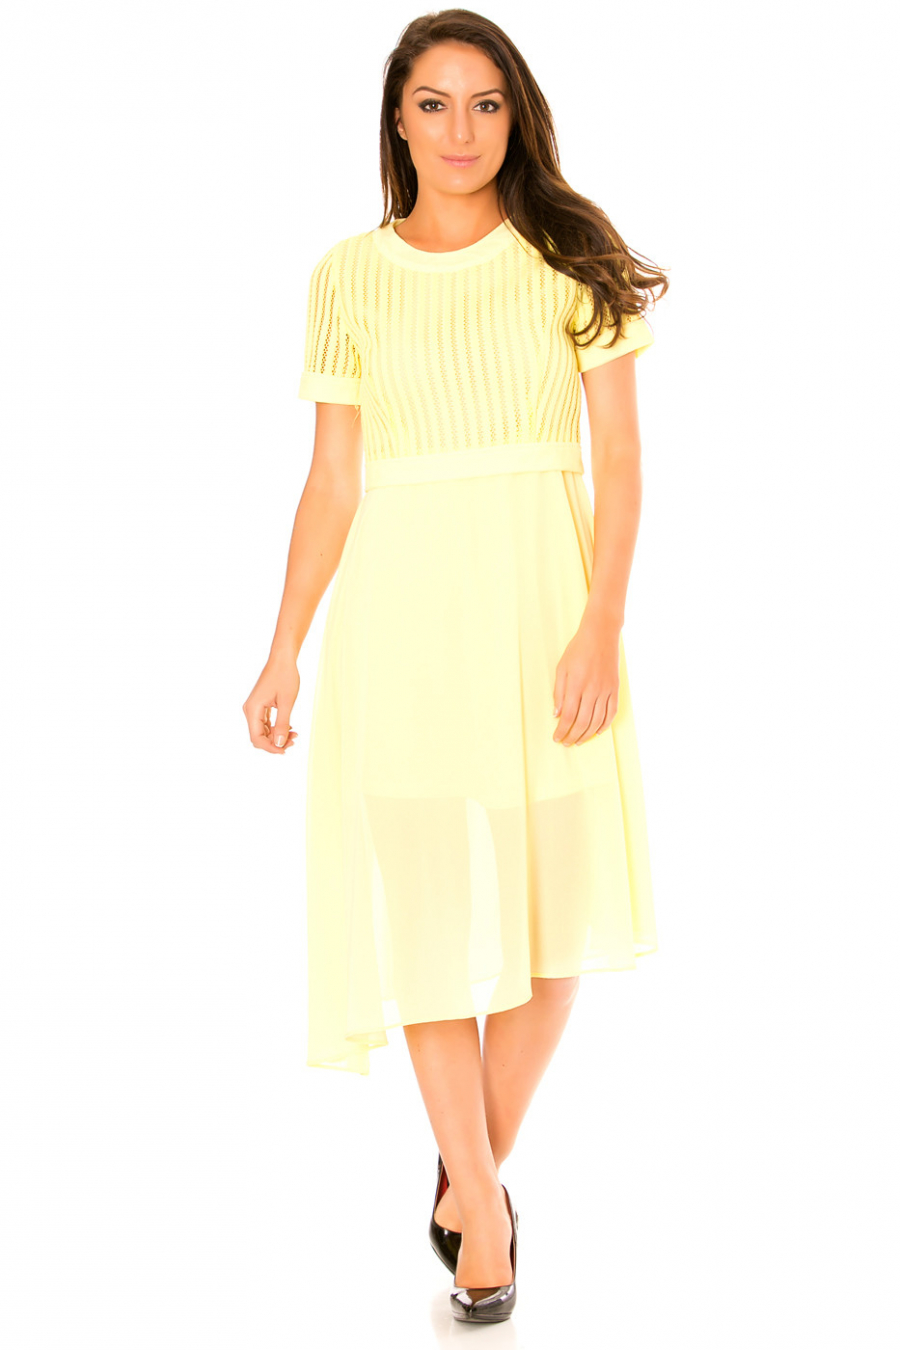 Asymmetric yellow dress and bi-material. Top with hole and sheer skirt. F6281